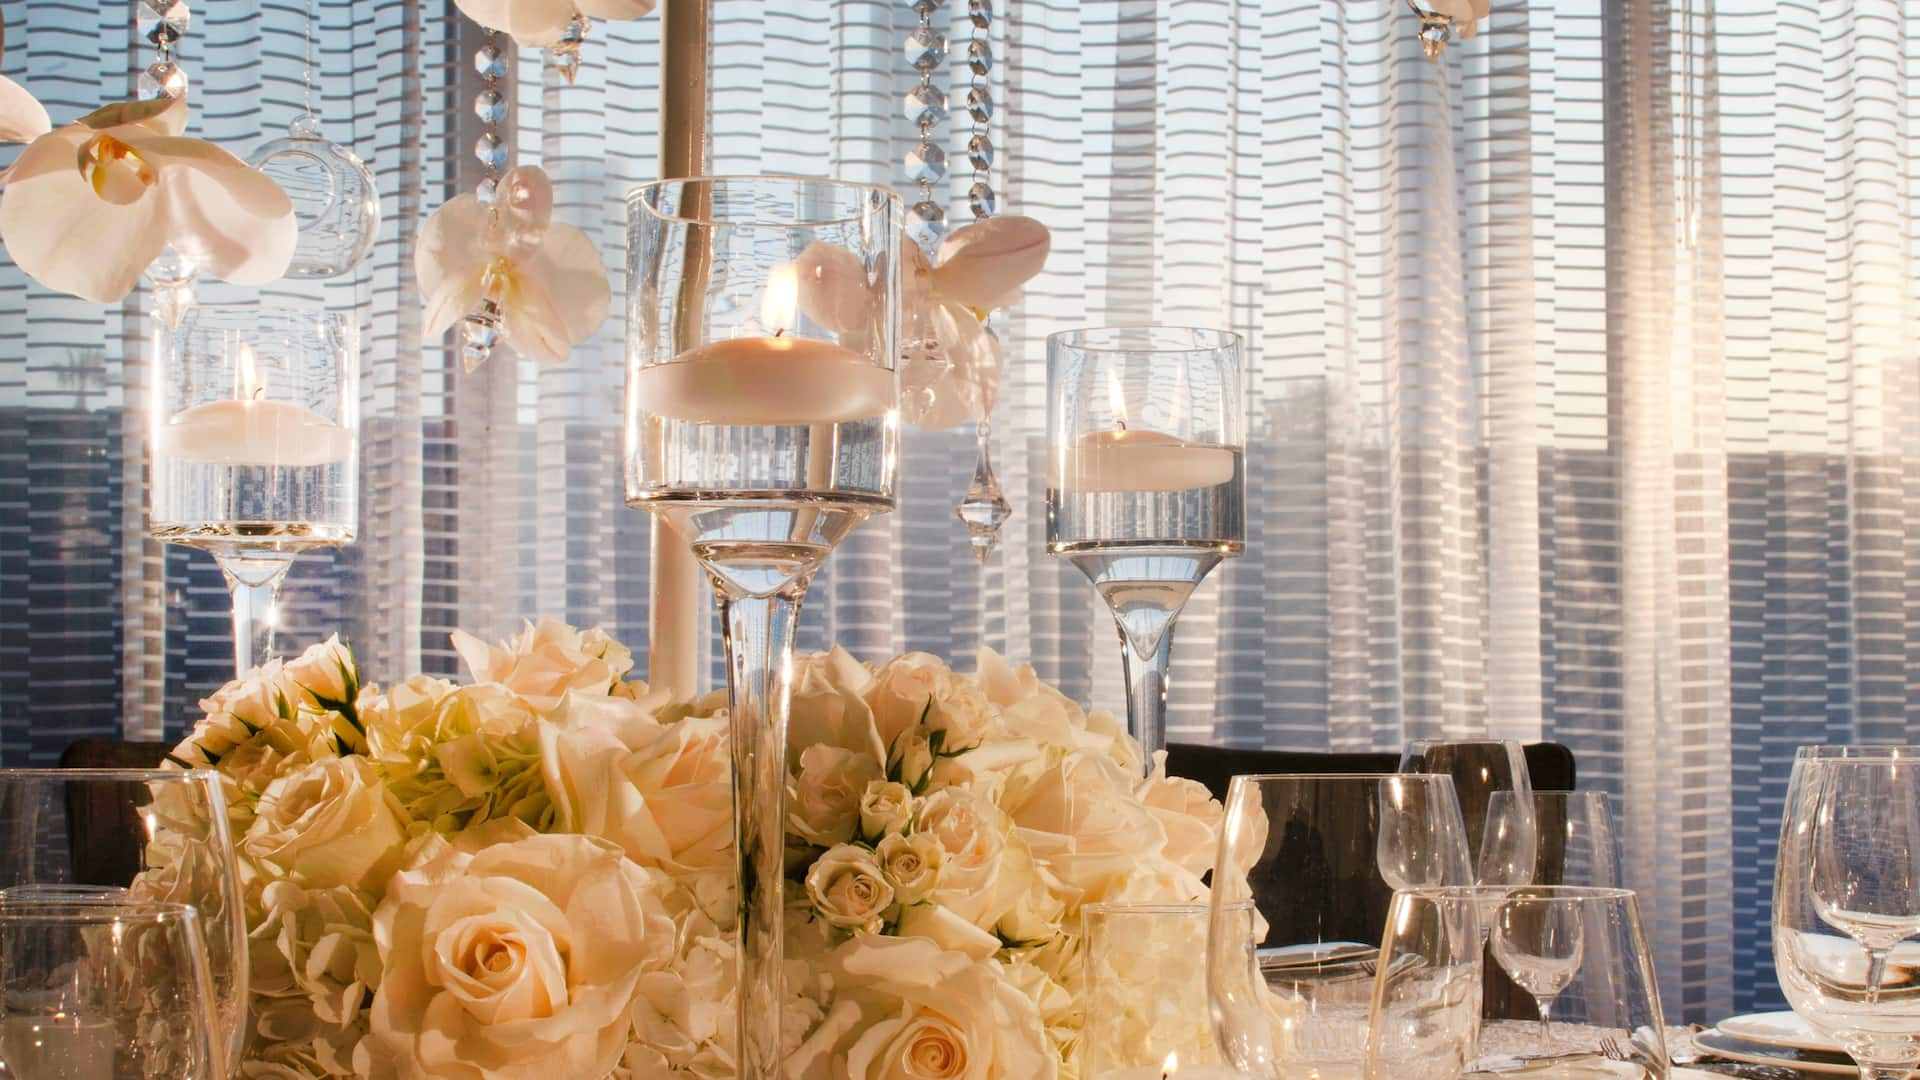 Table setting and floral arrangements for wedding